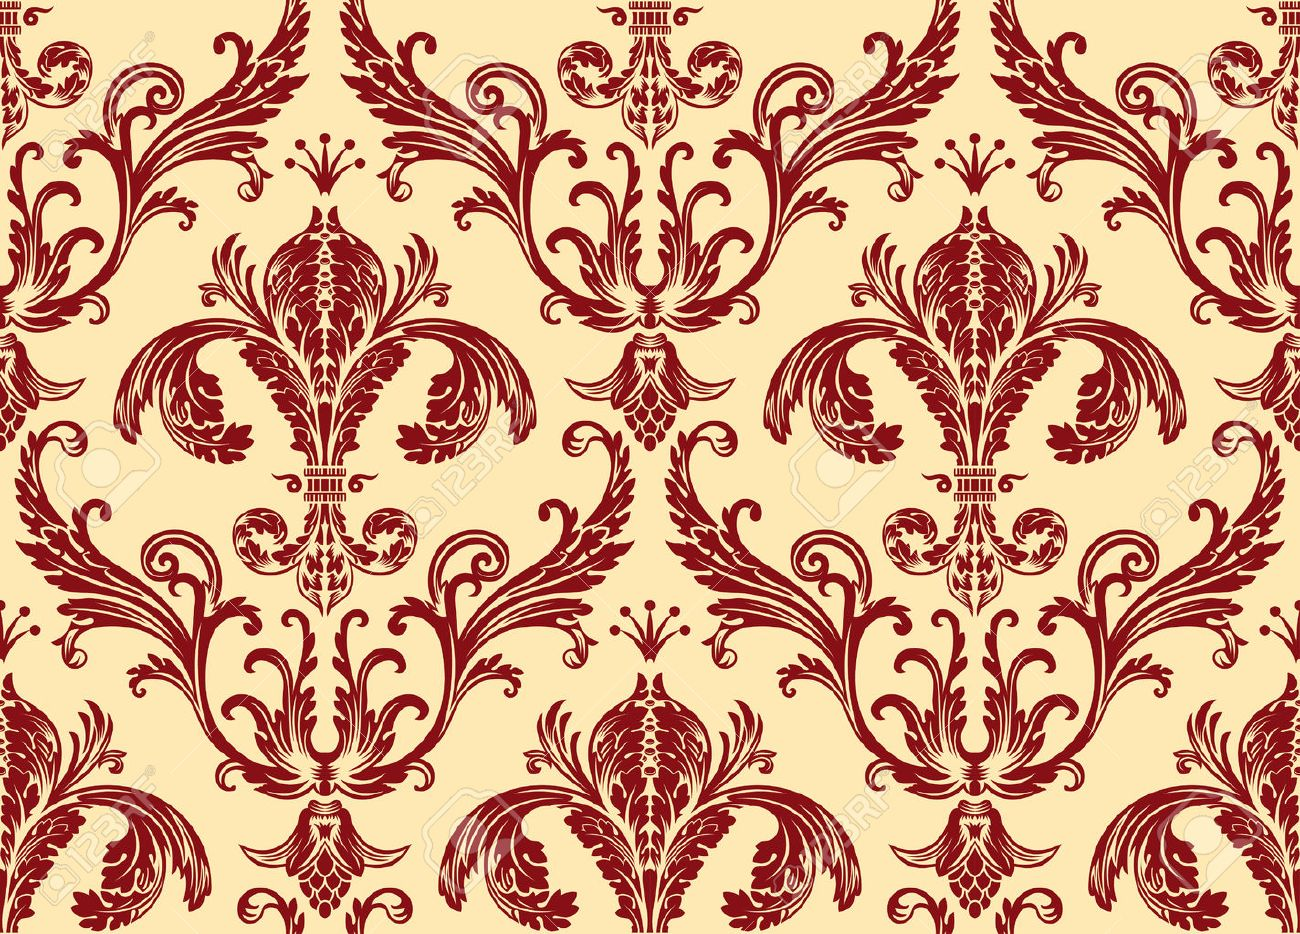 Background Antique Seamless Wallpaper. Red Decor Vintage Stock Vector    47050200